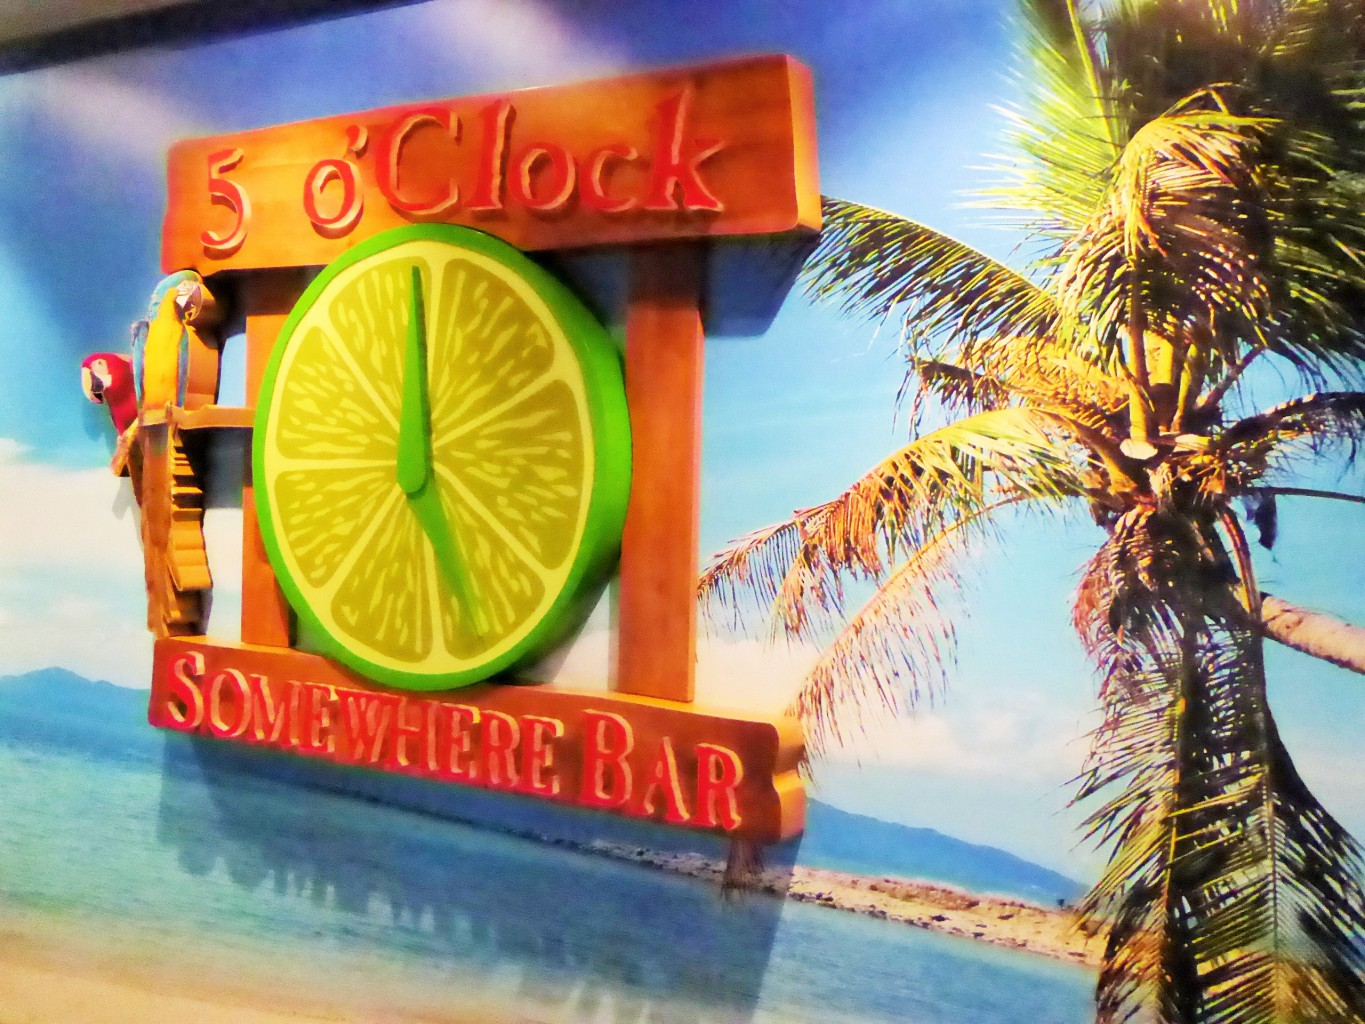 Norwegian Escape 5 0 Clock Bar Copyright S. Schaeffer010905 (2)